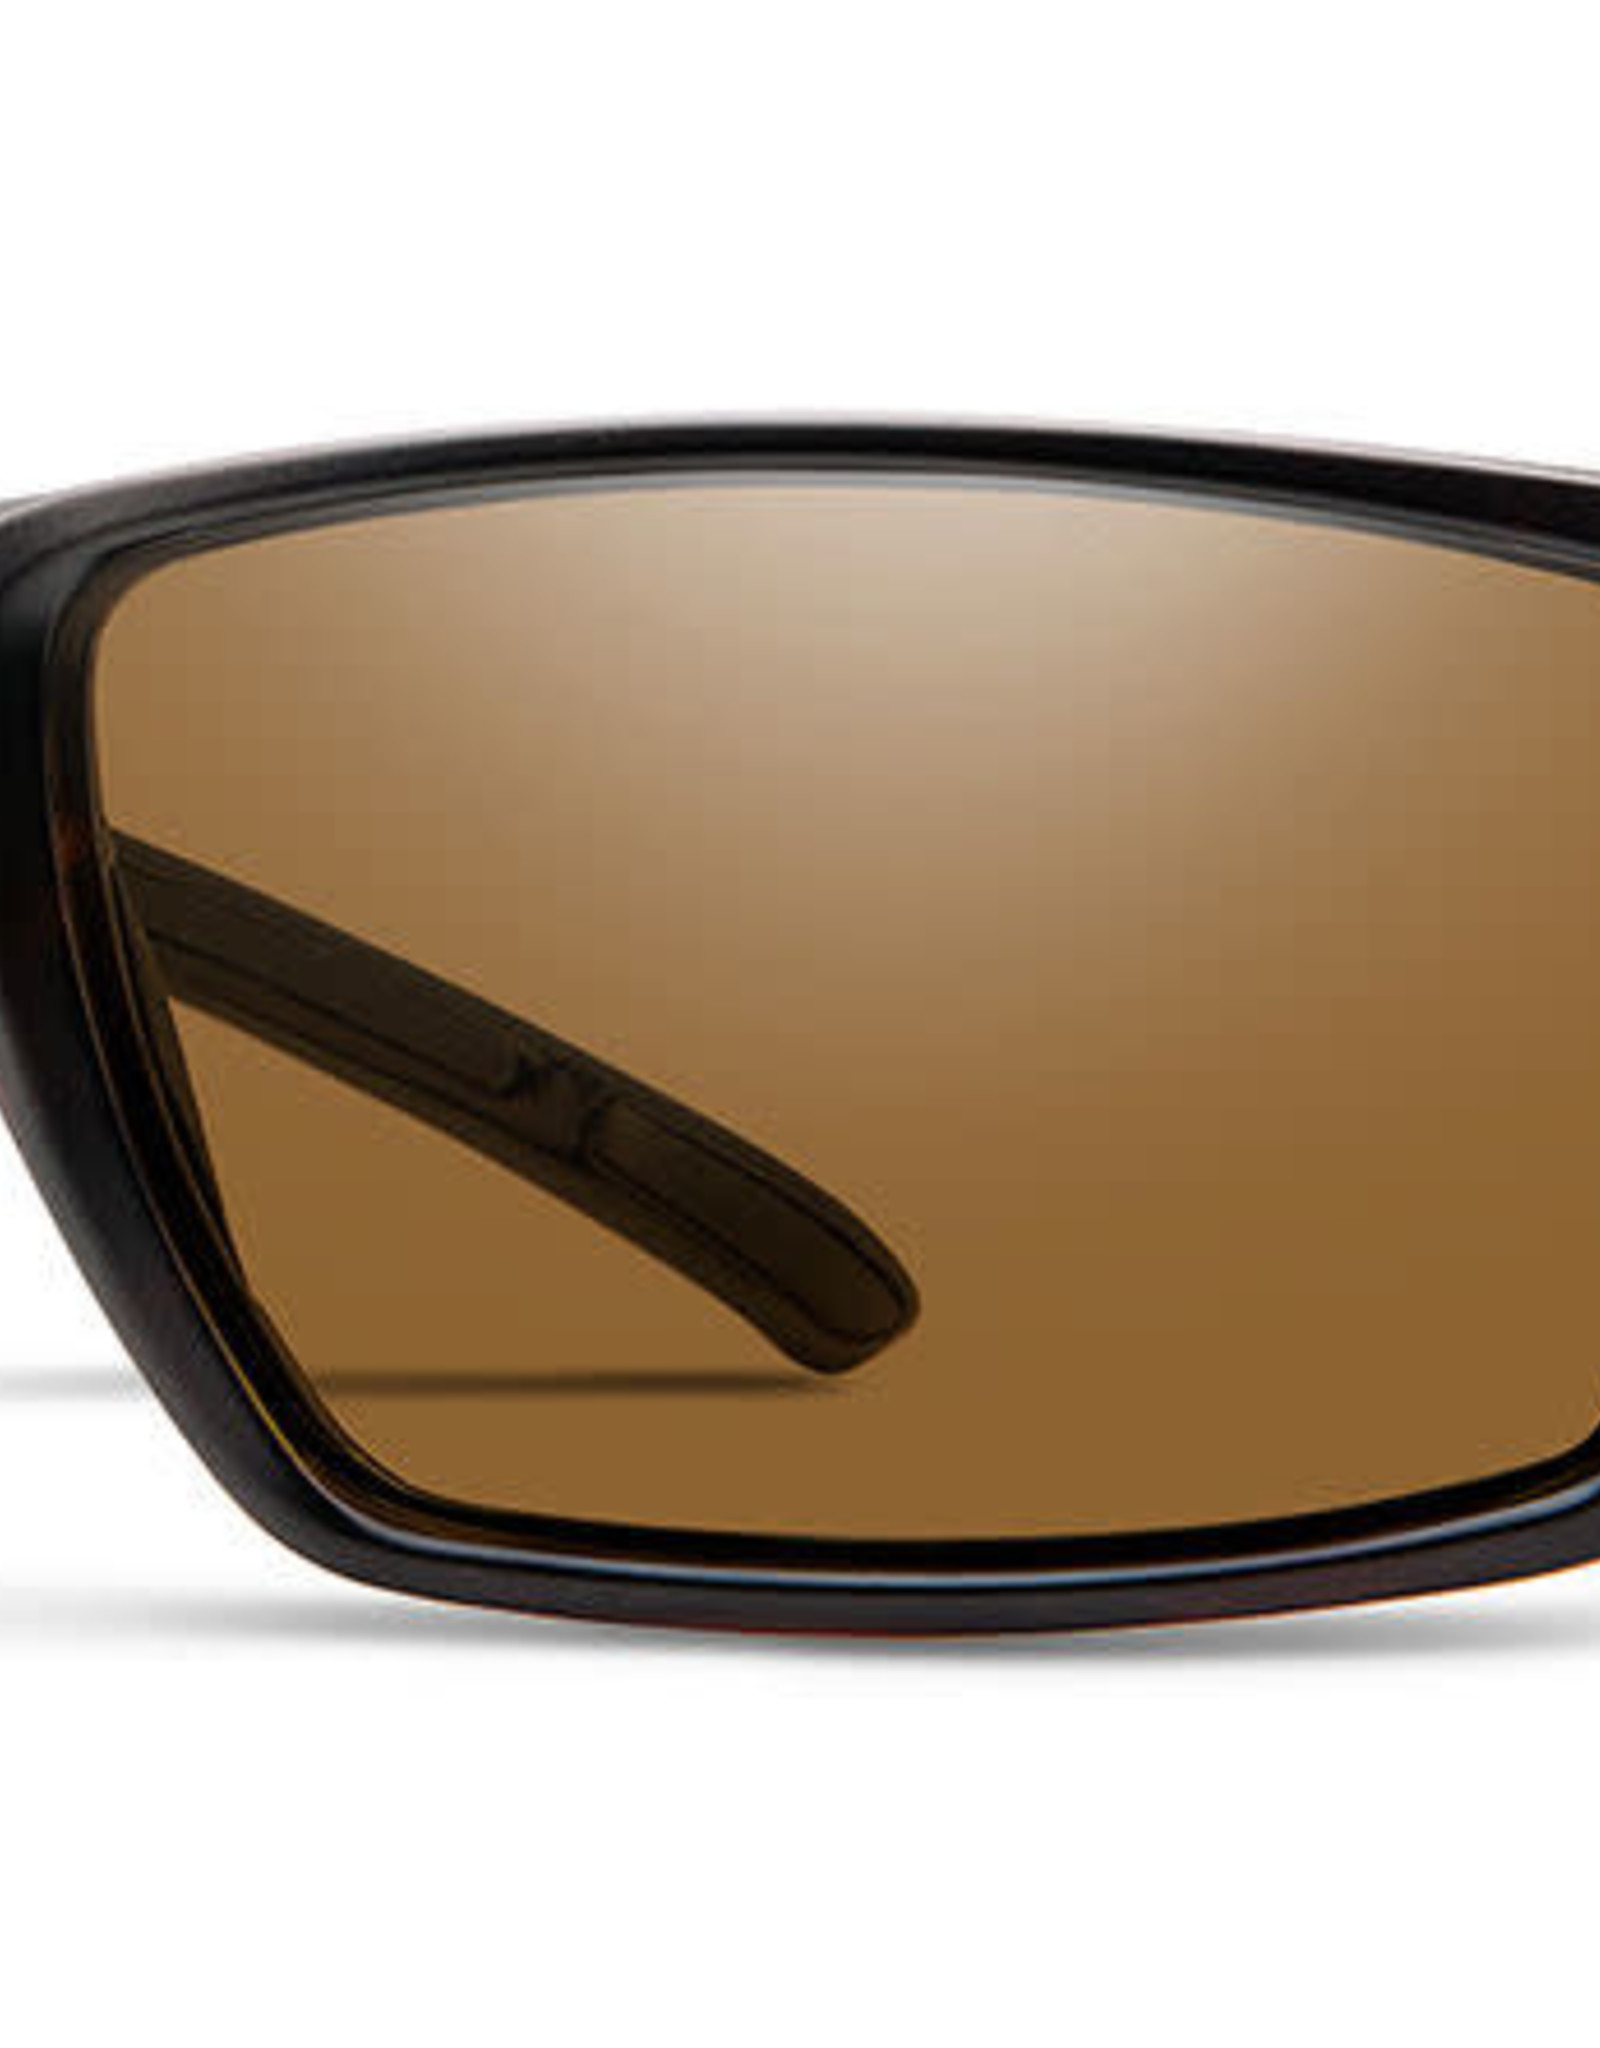 Smith Optics Smith - TRANSFER XL - Matte Tort w/ CP POLAR Brown